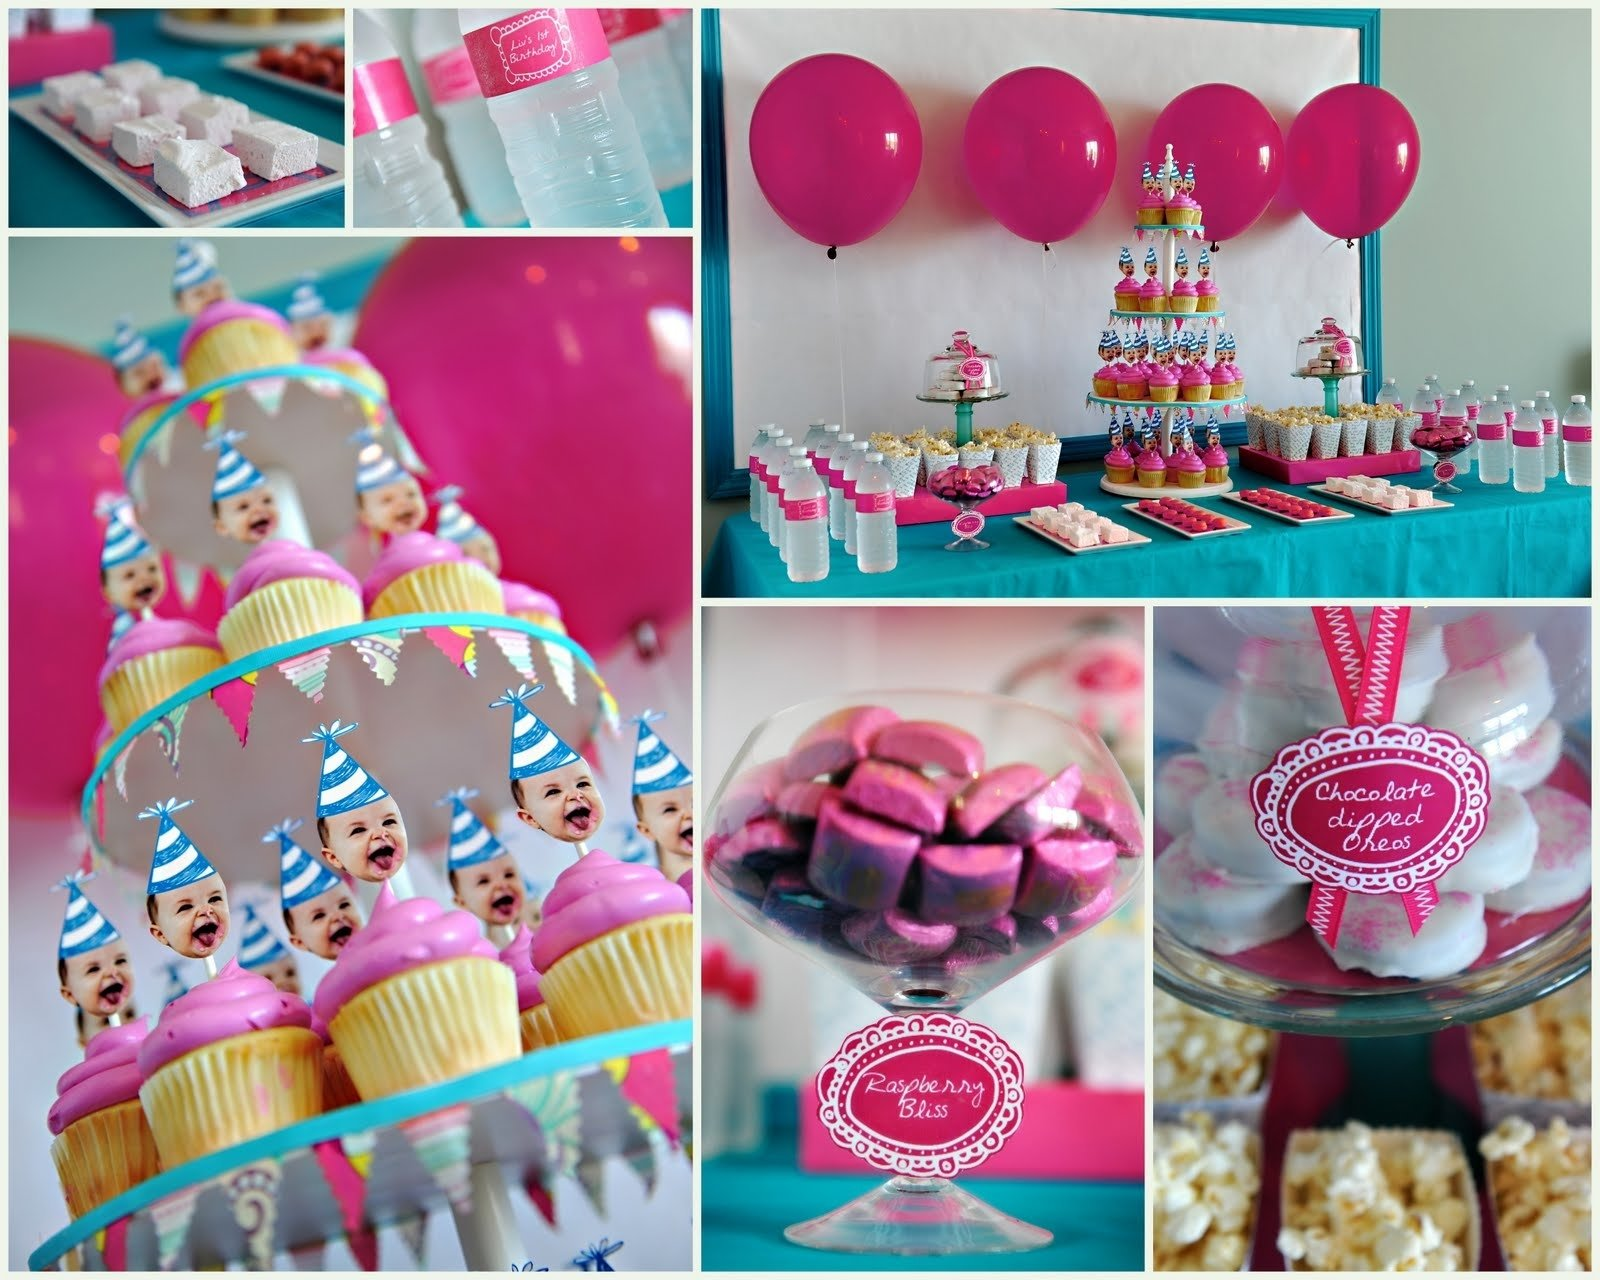 10 Stylish Birthday Party Ideas For A 3 Year Old birthday party ideas with balloon and cupcake lets party 9 2021